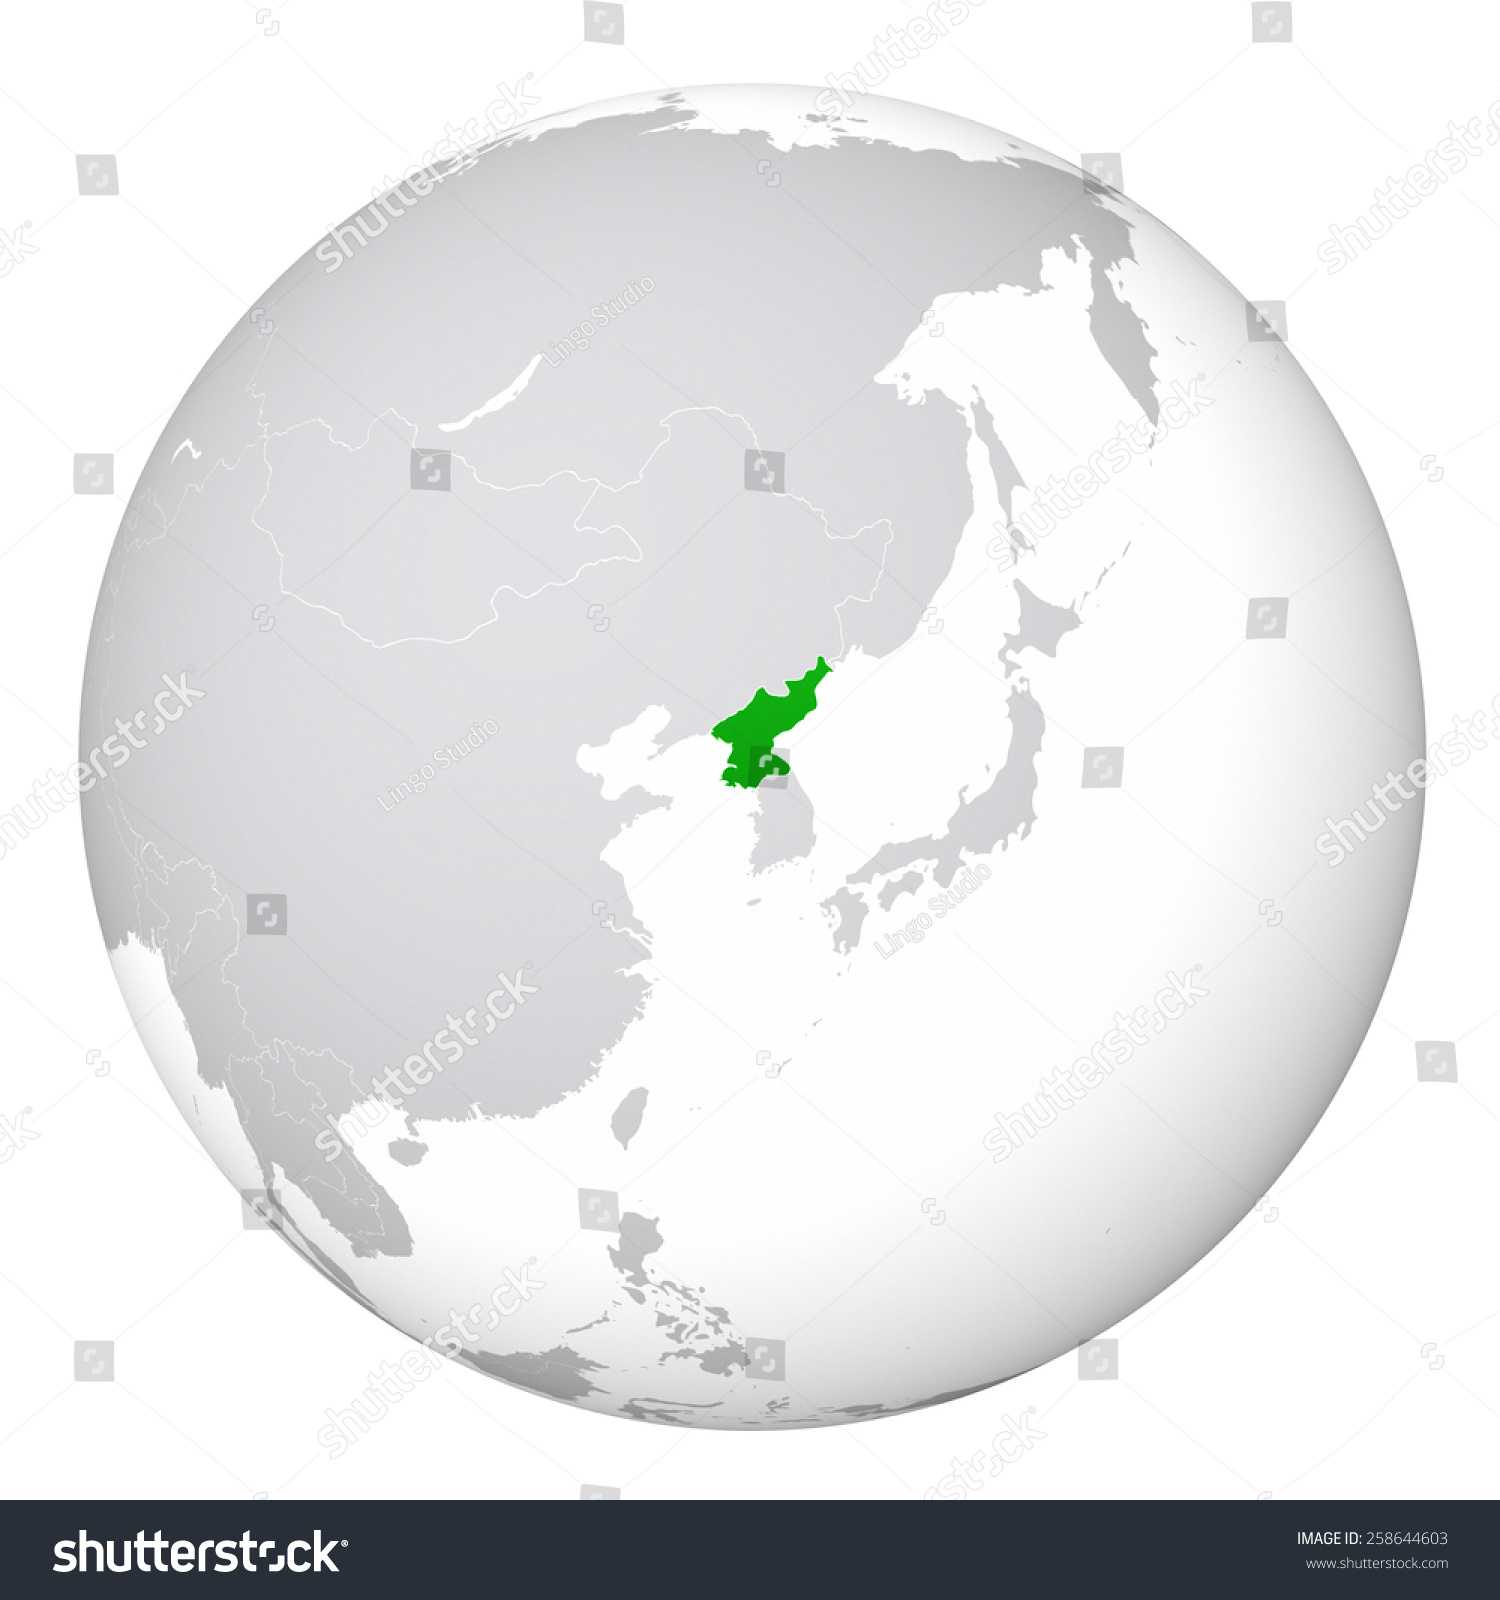 World map north korea stock illustration 258644603 shutterstock world map north korea gumiabroncs Gallery